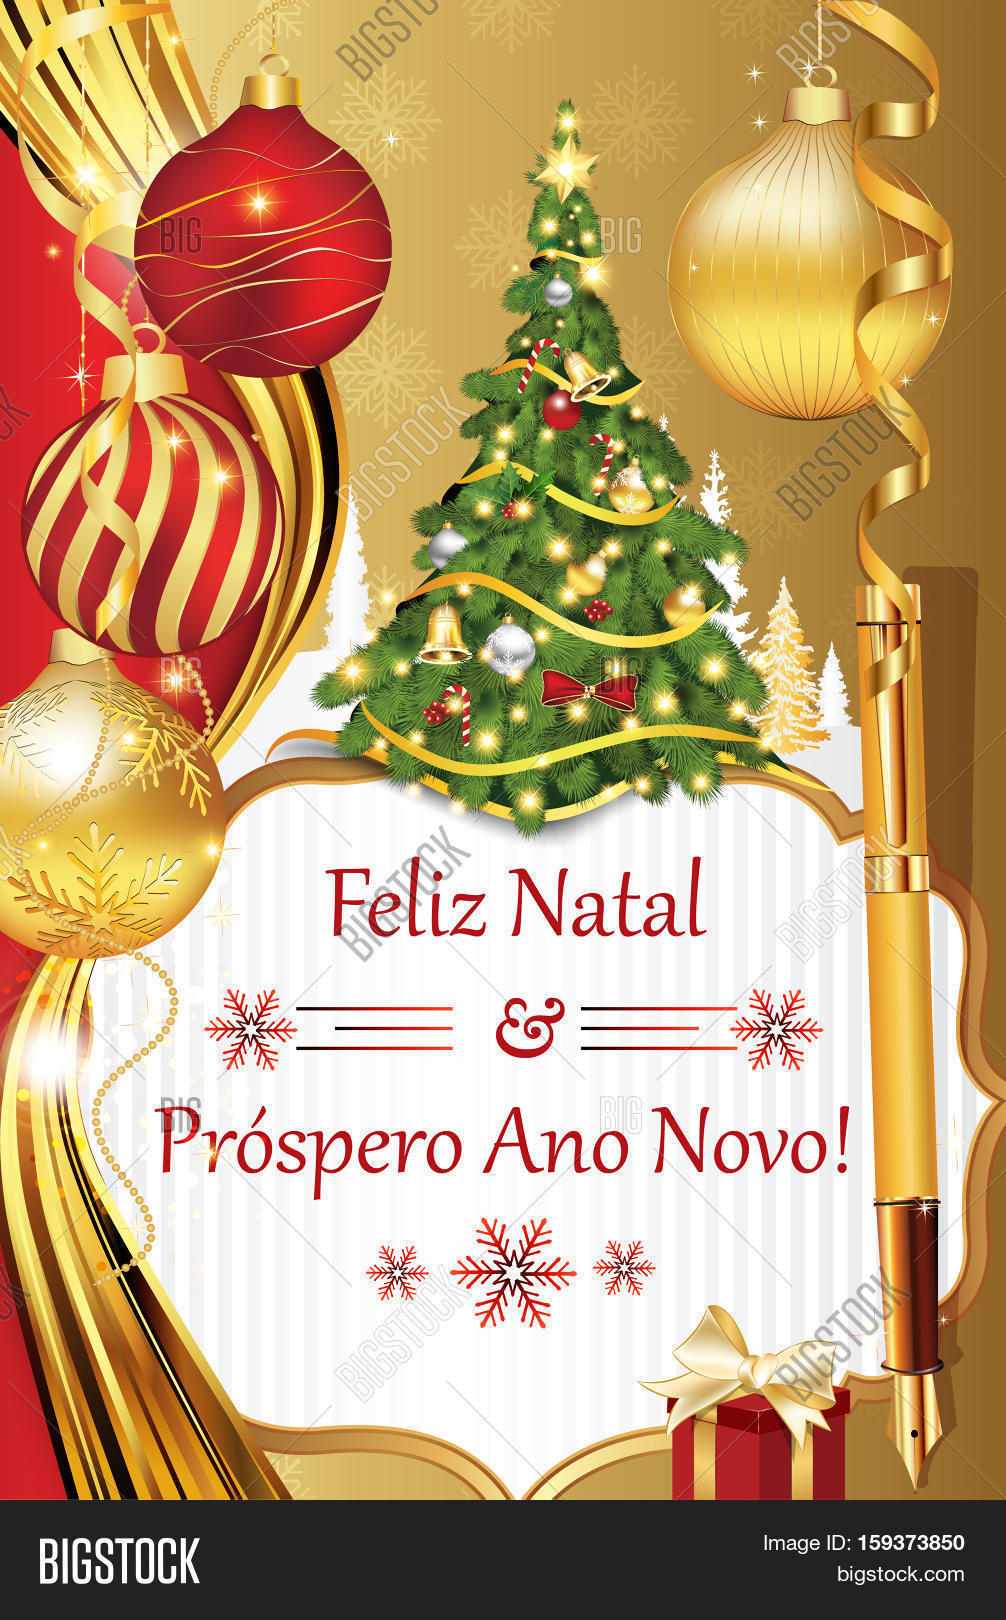 Portuguese Season's Greetings. Image & Photo | Bigstock